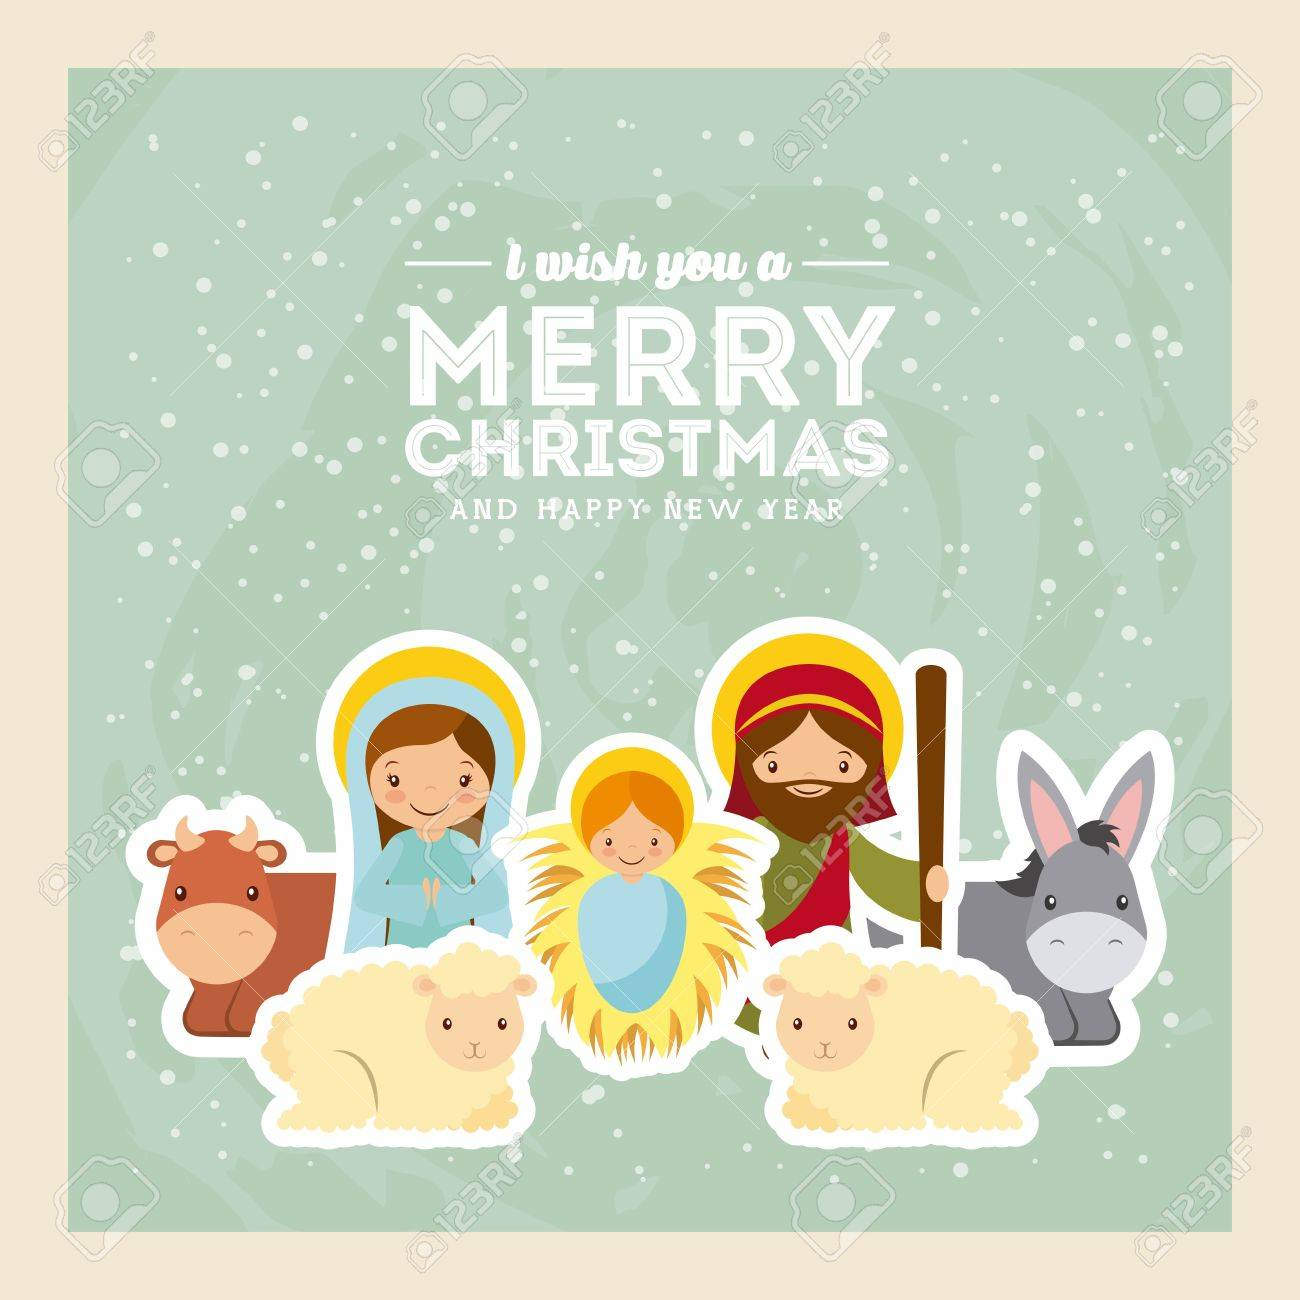 card of holy family manger scene with animals merry christmas and happy new year colorful